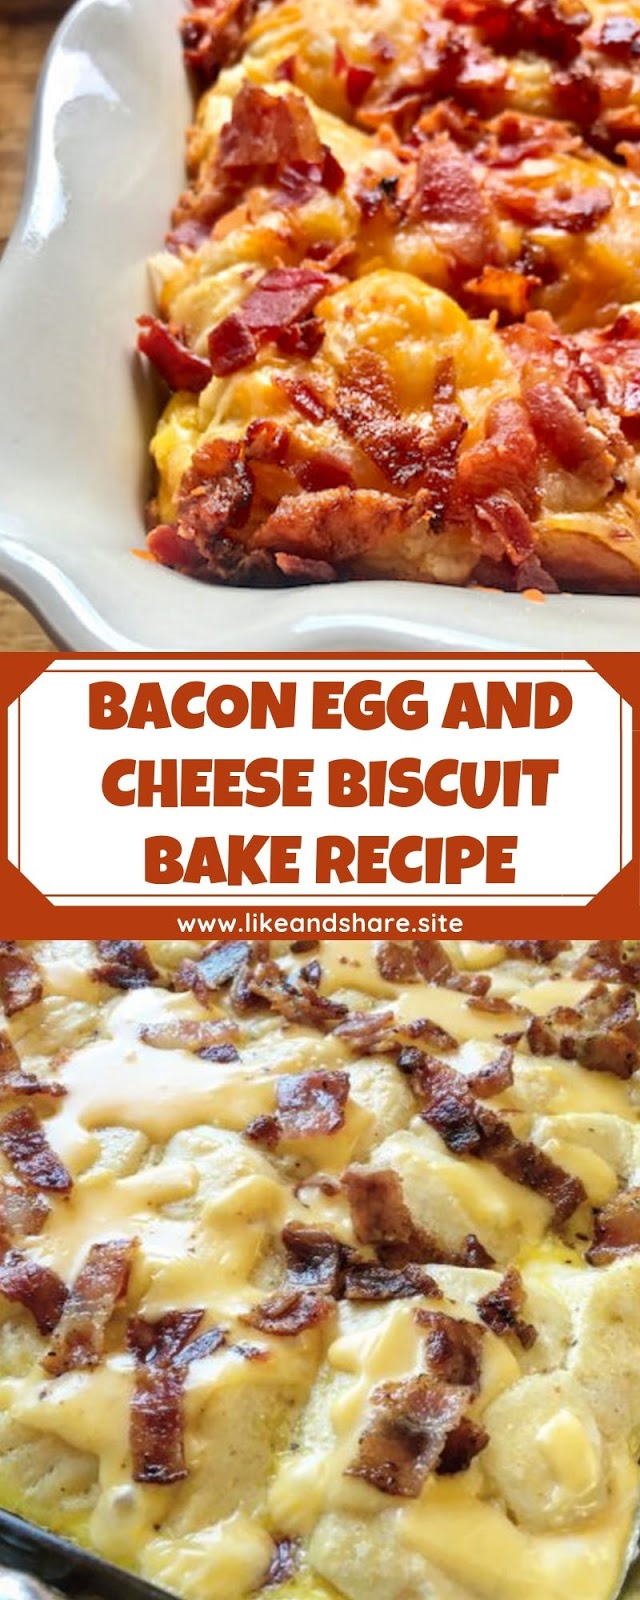 BACON EGG AND CHEESE BISCUIT BAKE RECIPE